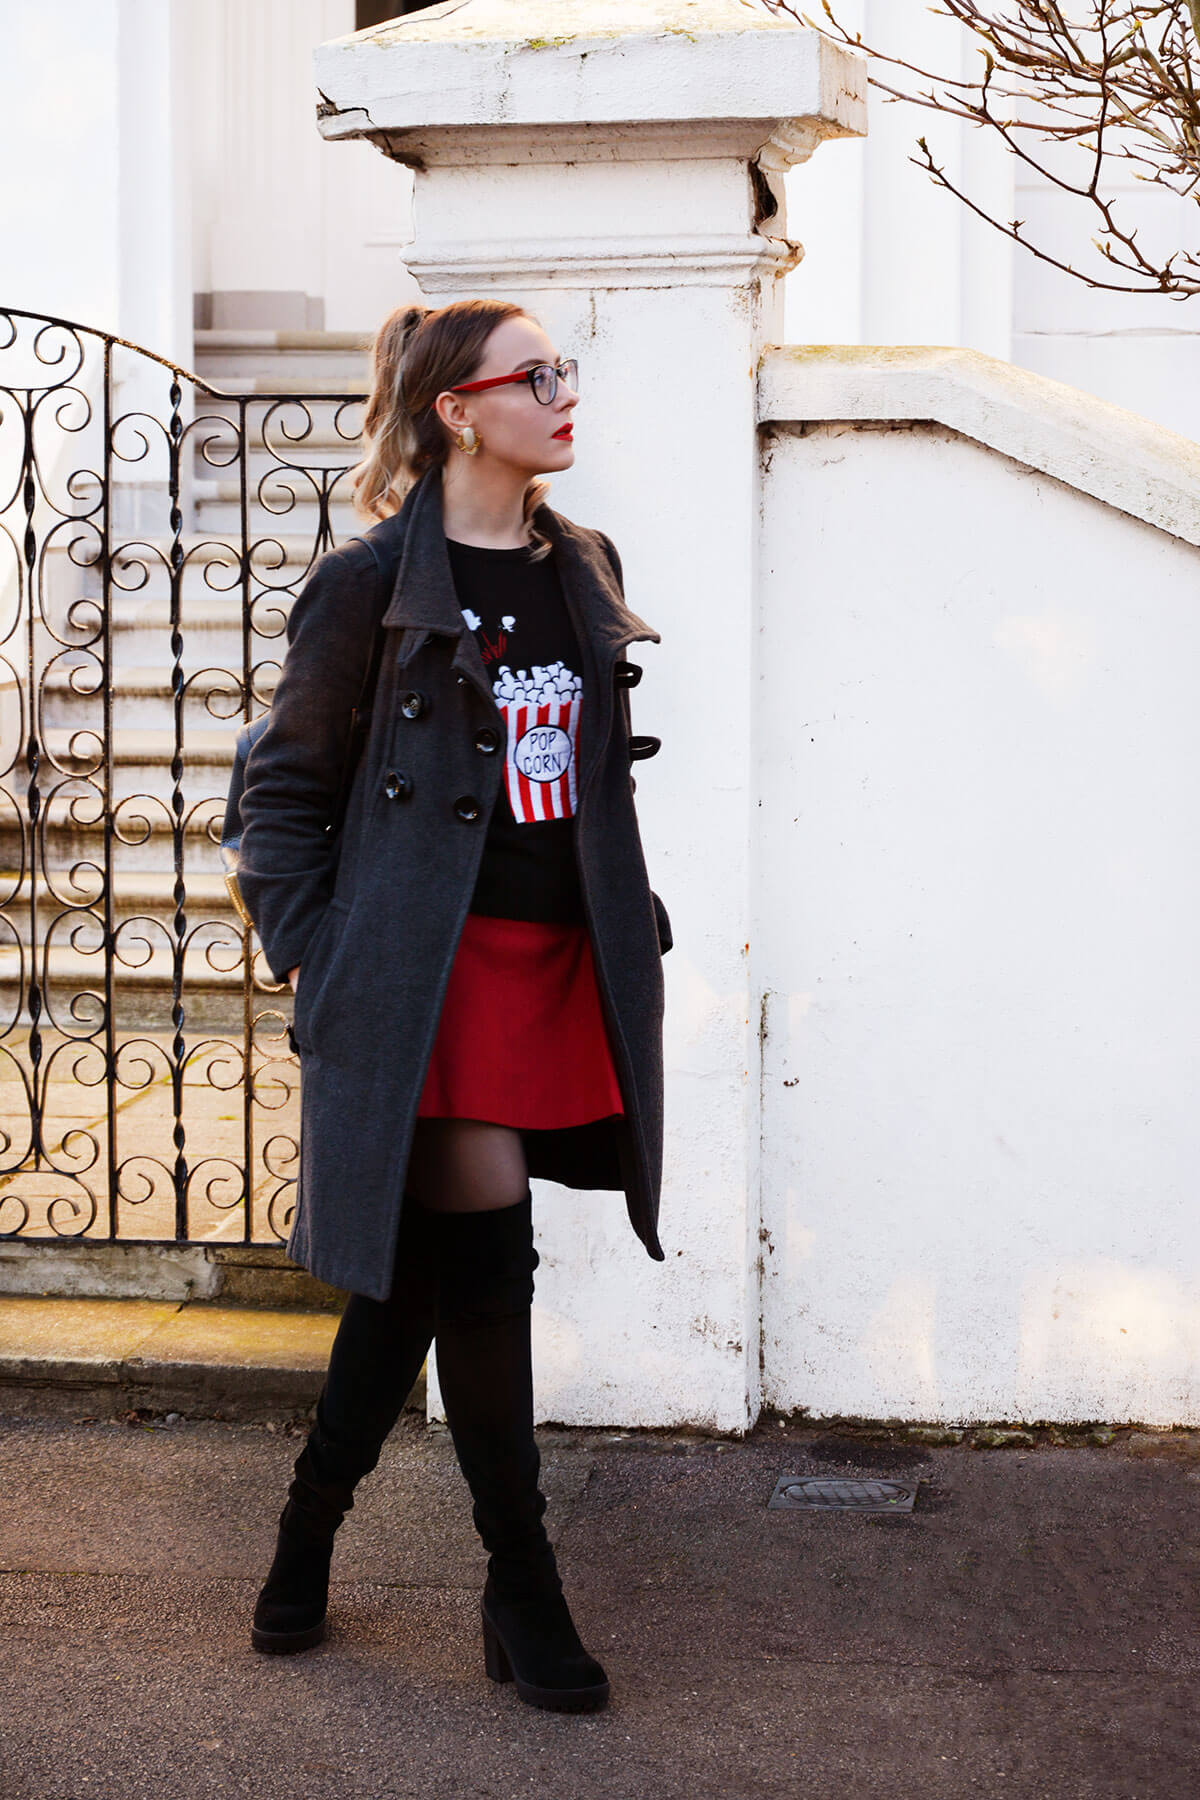 Edita in George, Zara, Karen Millen, Glasses Shop, HM 3